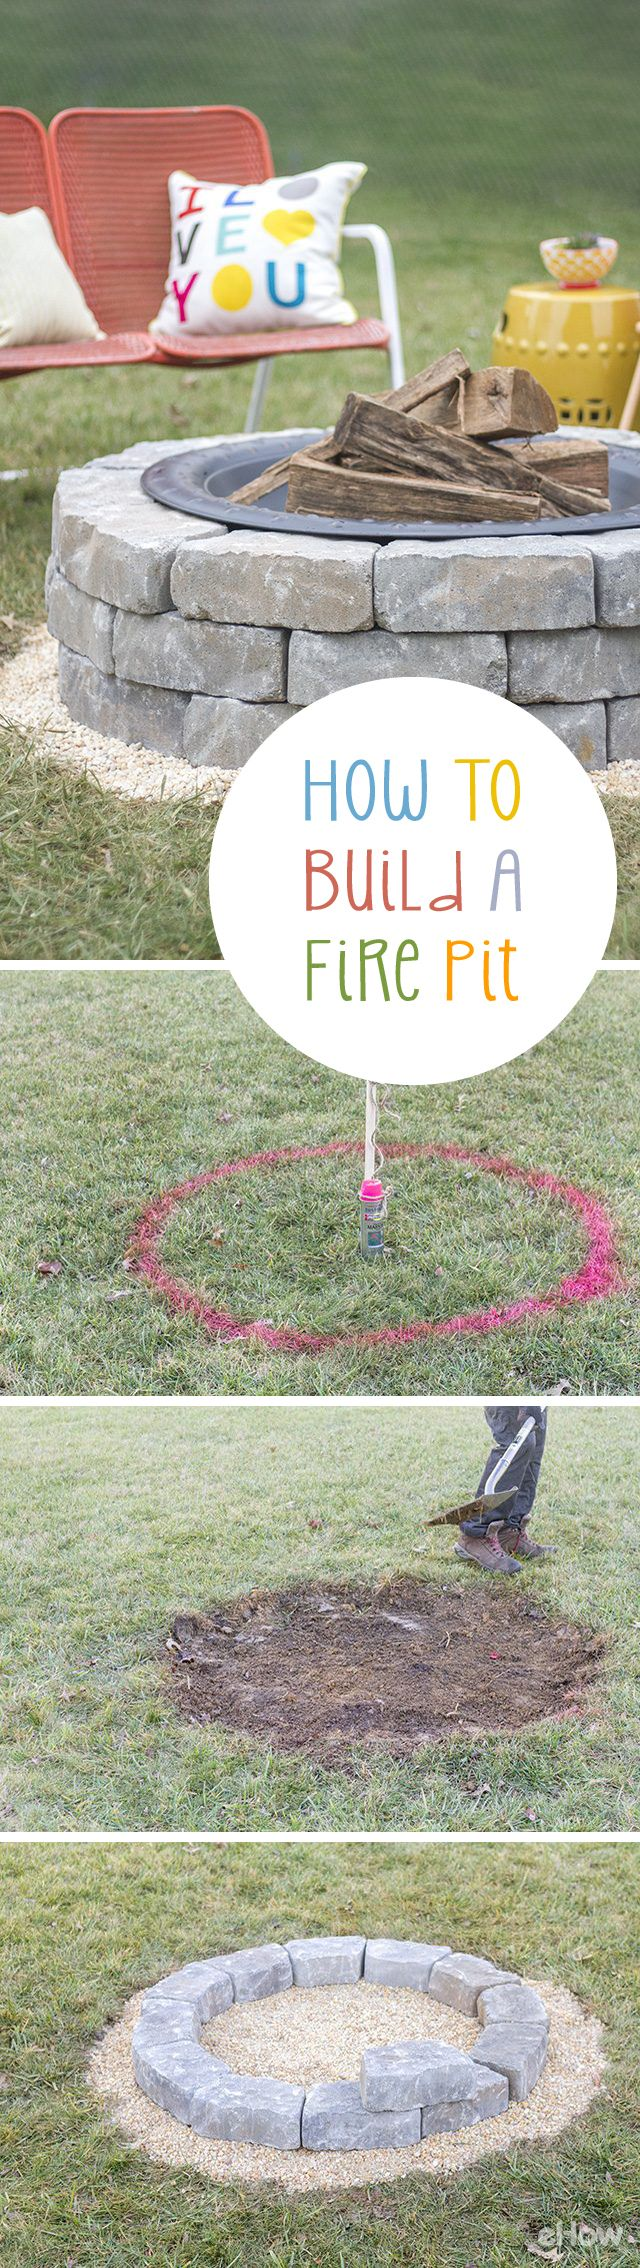 Use wall stones to make a beautiful, functioning fire pit for your backyard. Easy tutorial here: http://www.ehow.com/how_7321664_build-fire-pit-pavers.html?utm_source=pinterest.com&utm_medium=referral&utm_content=freestyle&utm_campaign=fanpage